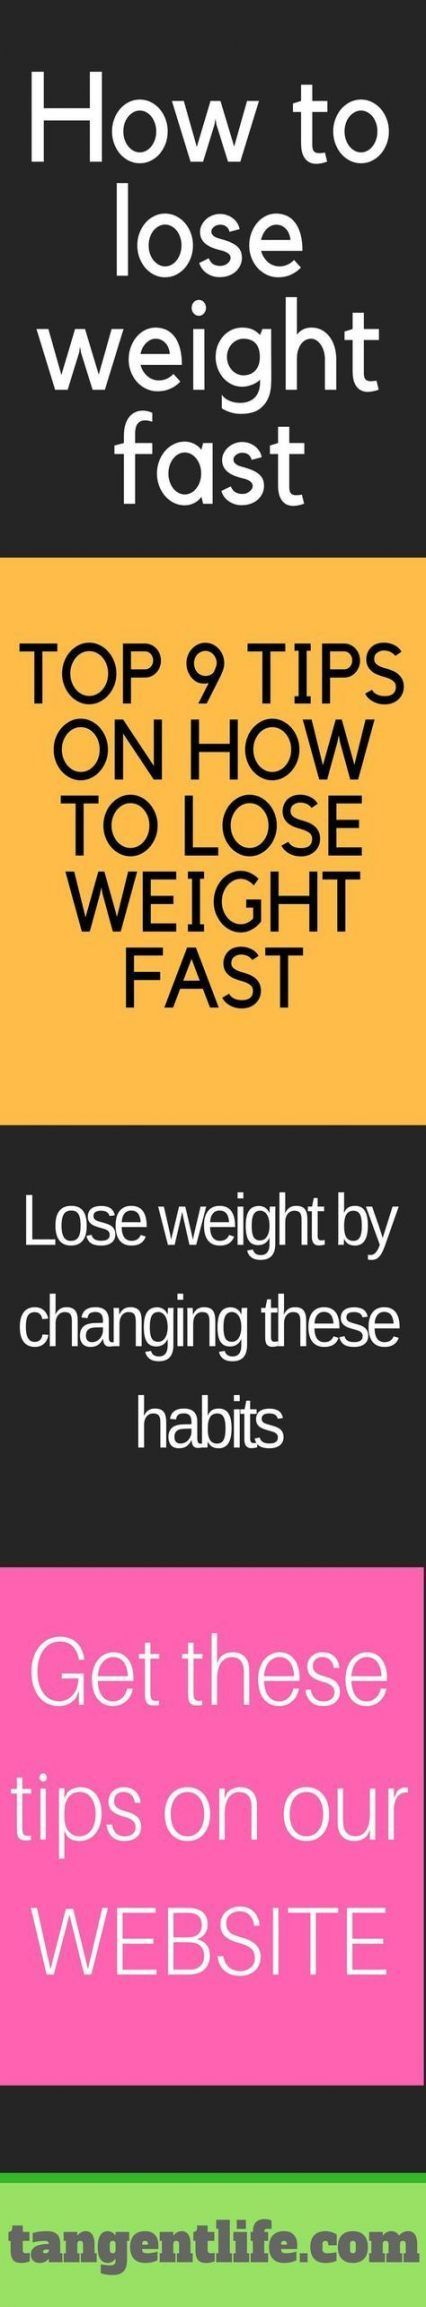 37 Ideas how to loose weight for teens diets 37 Ideas how to loose weight for teens diets -